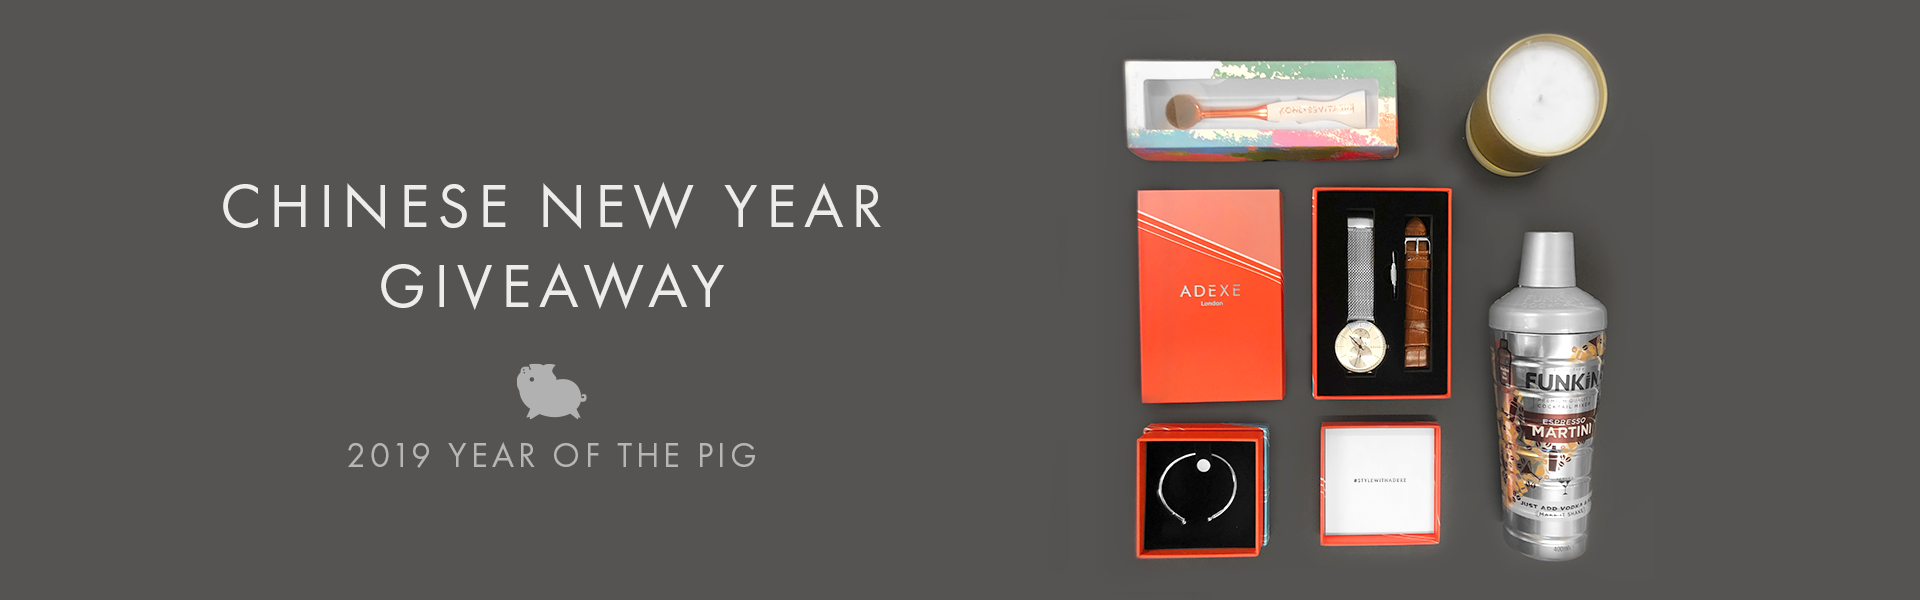 Chinese New Year Giveaway with ADEXE